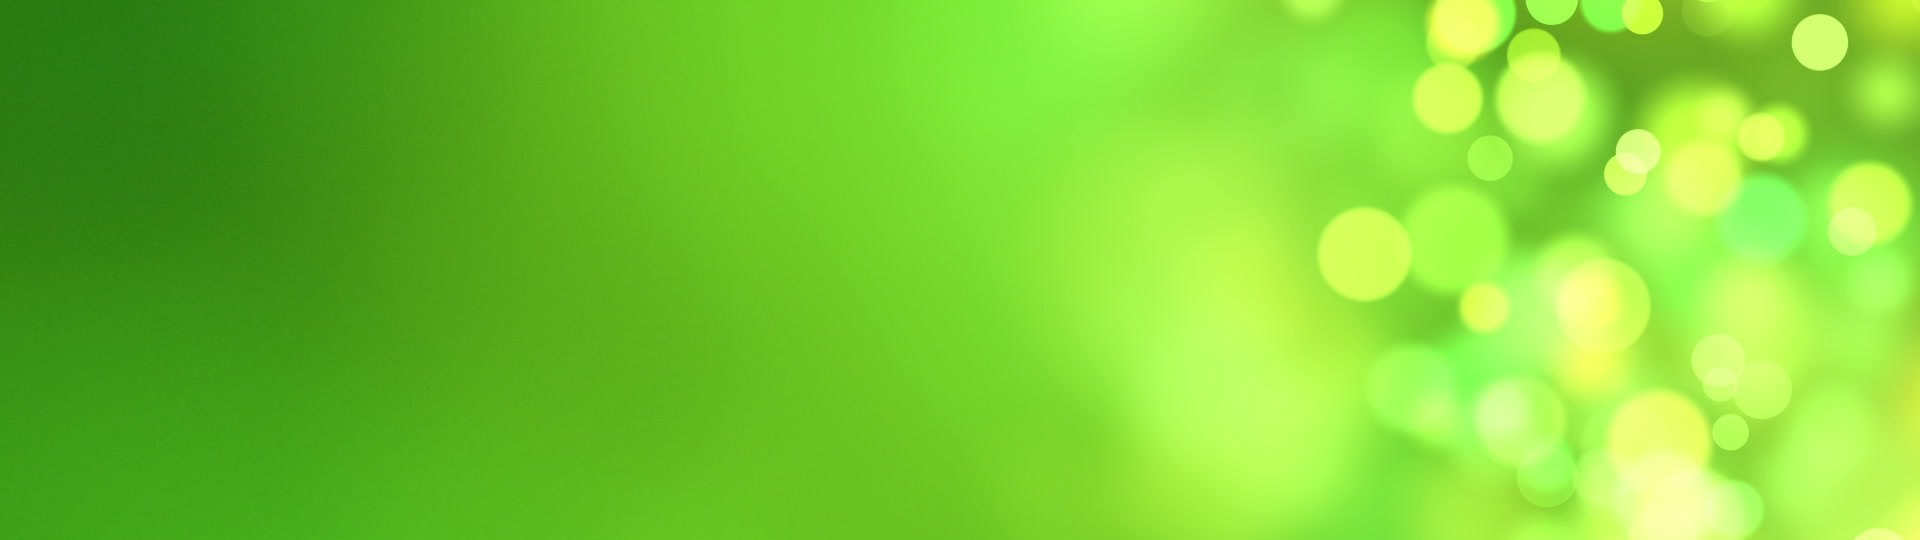 Loopable abstract background green bokeh circles | green bokeh circles. computer generated loopable abstract motion background - ID:15851